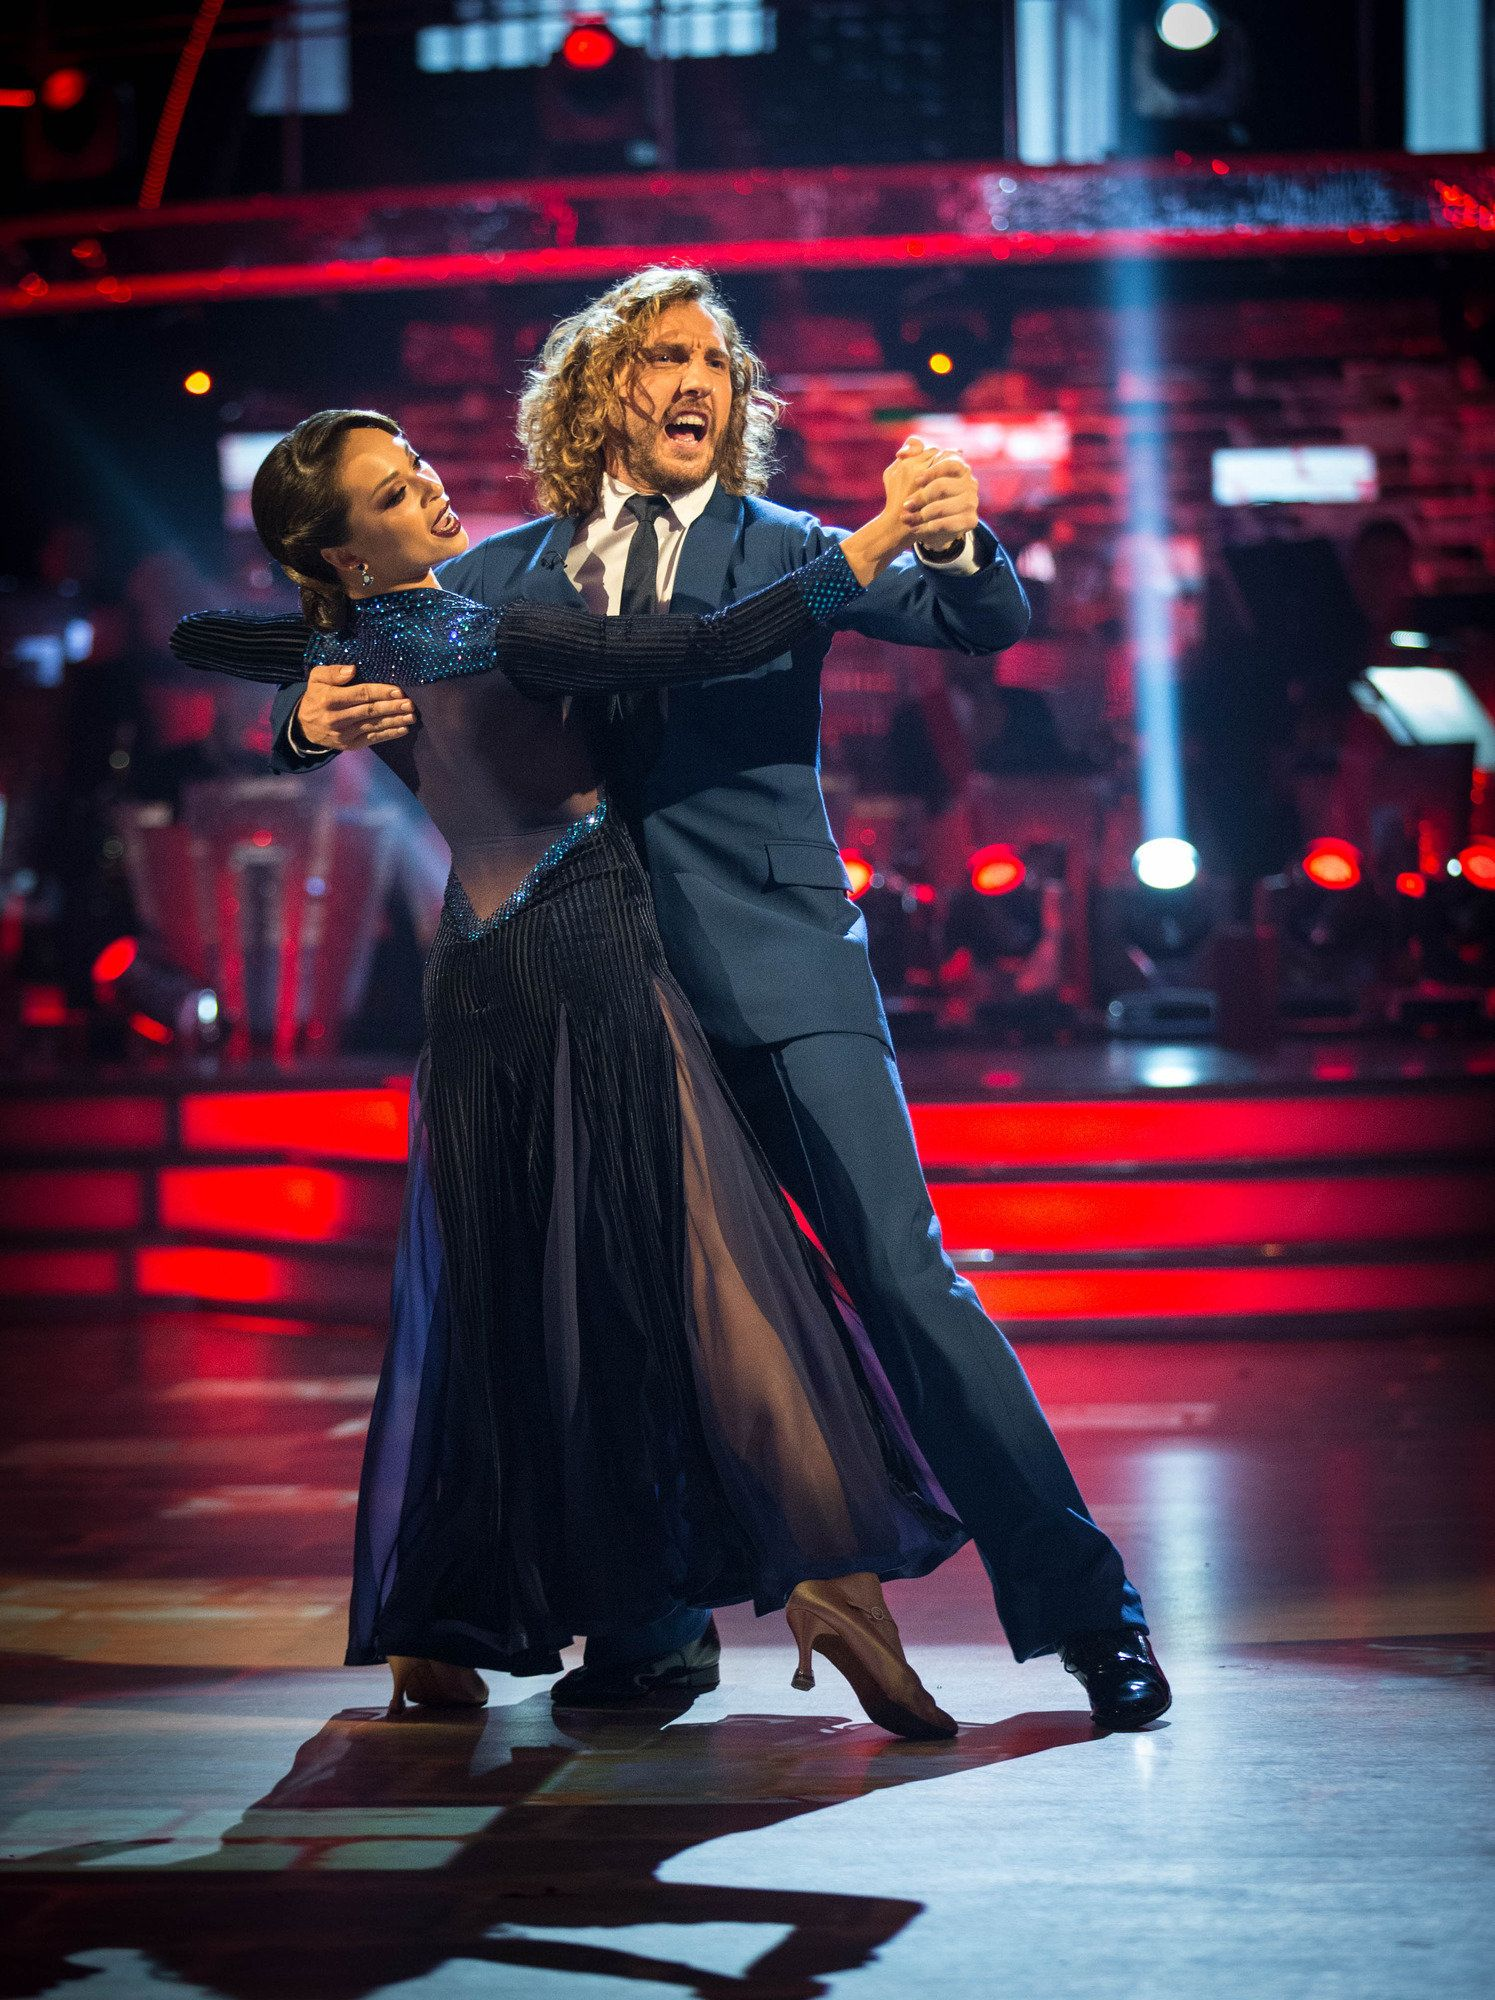 Seann Walsh's Days On 'Strictly' Could Be Numbered, According To Bookies